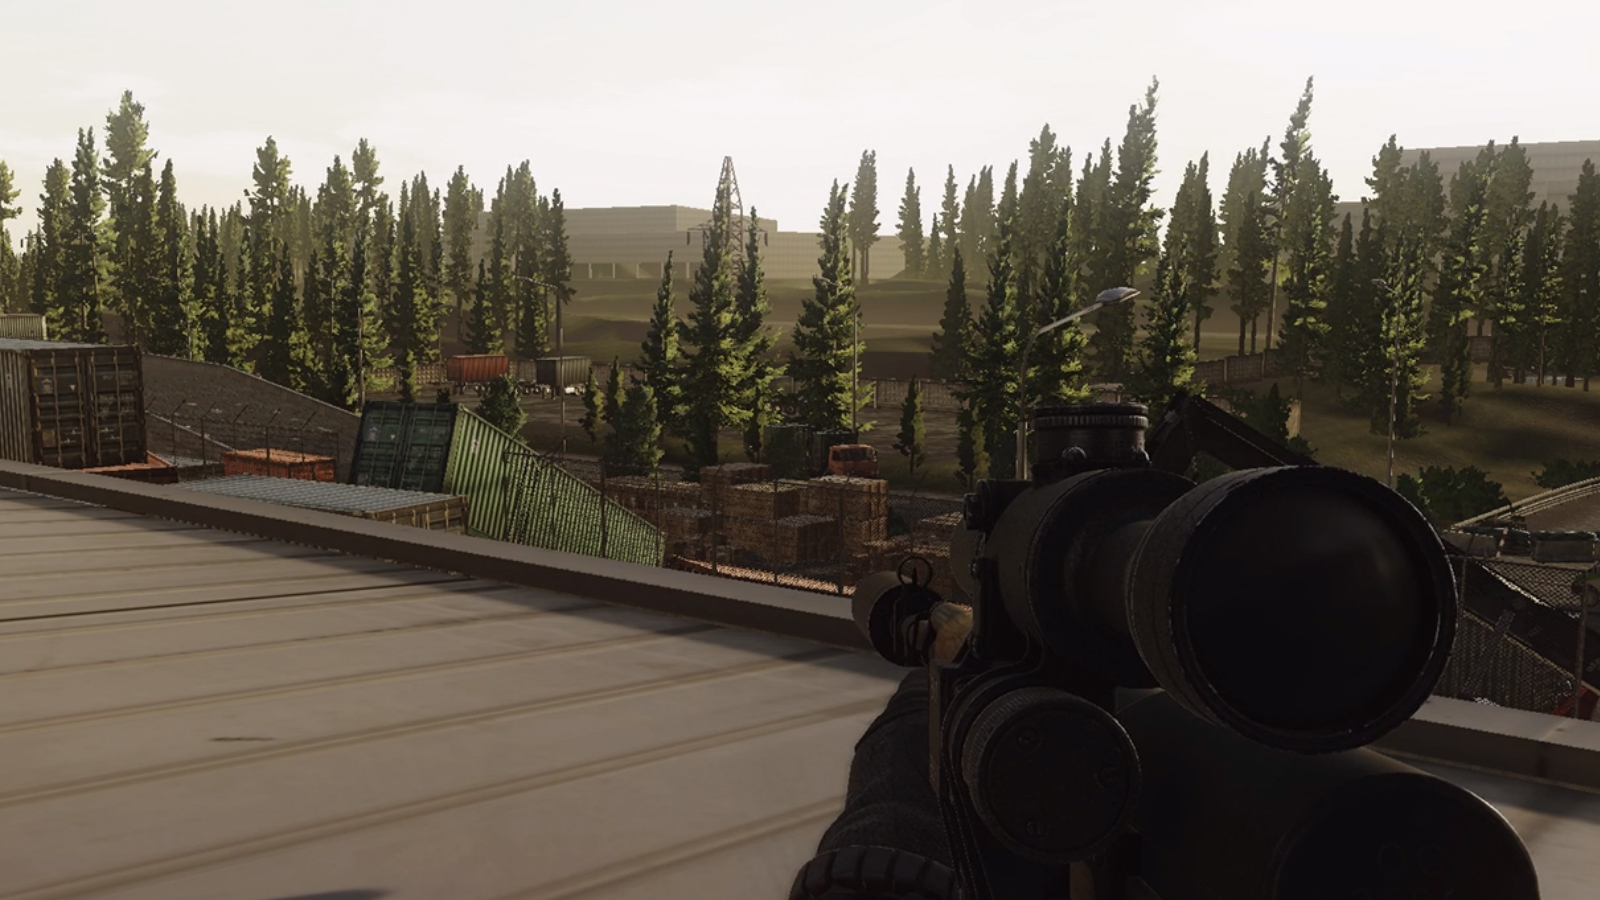 Exit camping in Escape from Tarkov with a sniper rifle on top of a roof